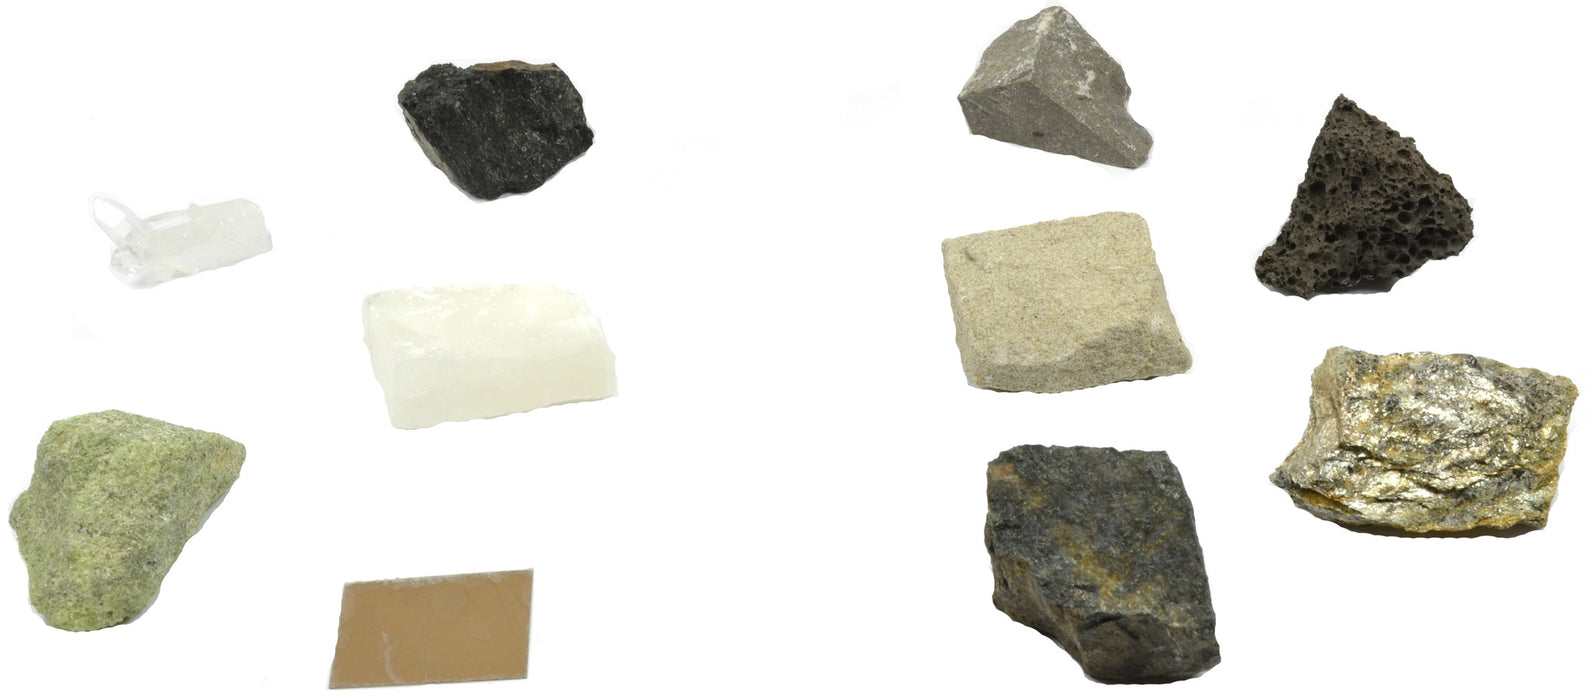 Rock/Mineral Matching Game - Set of 10 Rock and Mineral Specimens